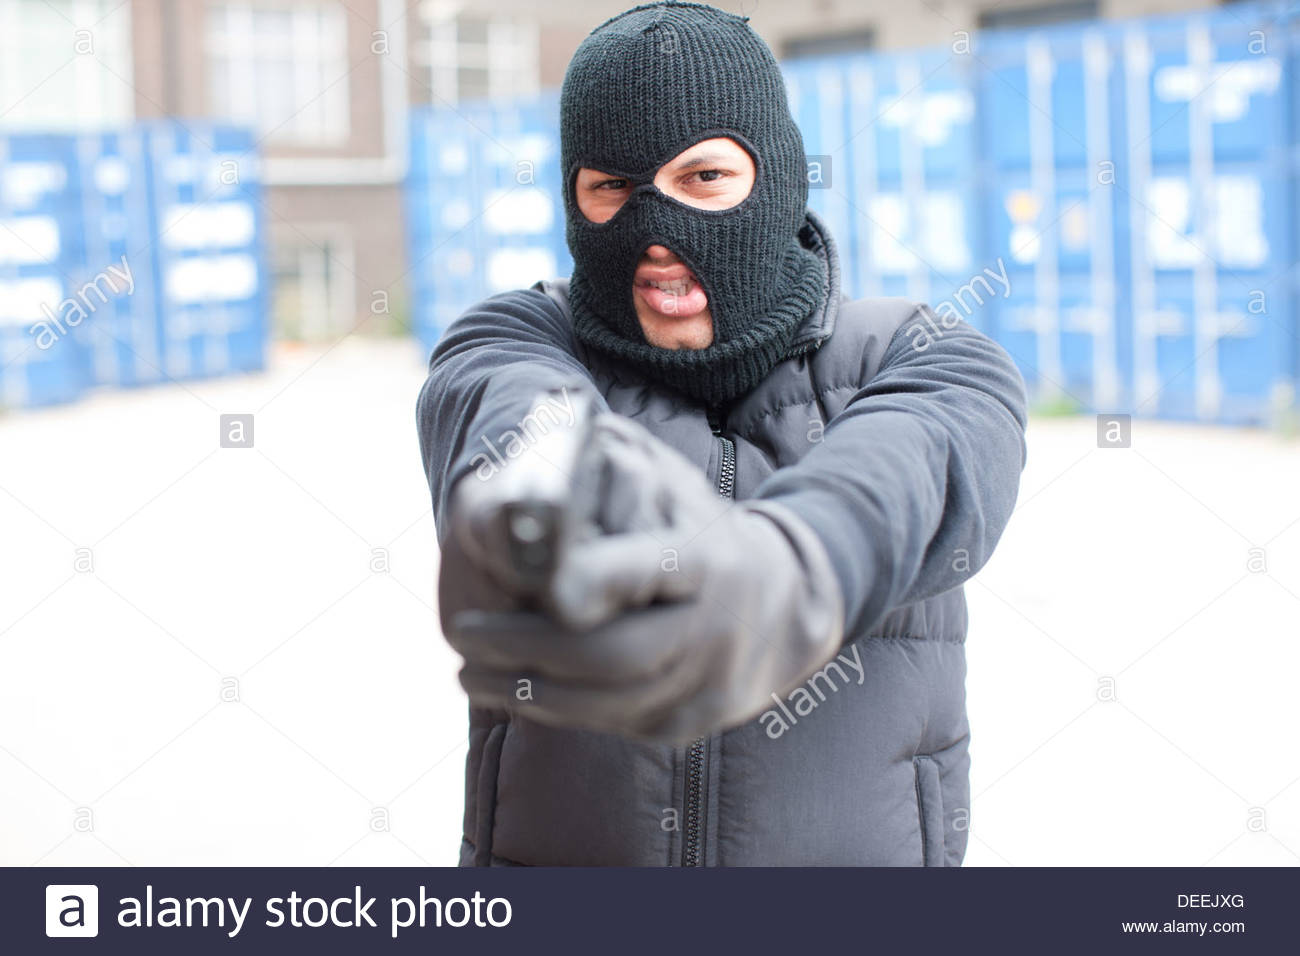 Man in ski mask holding gun Stock Photo